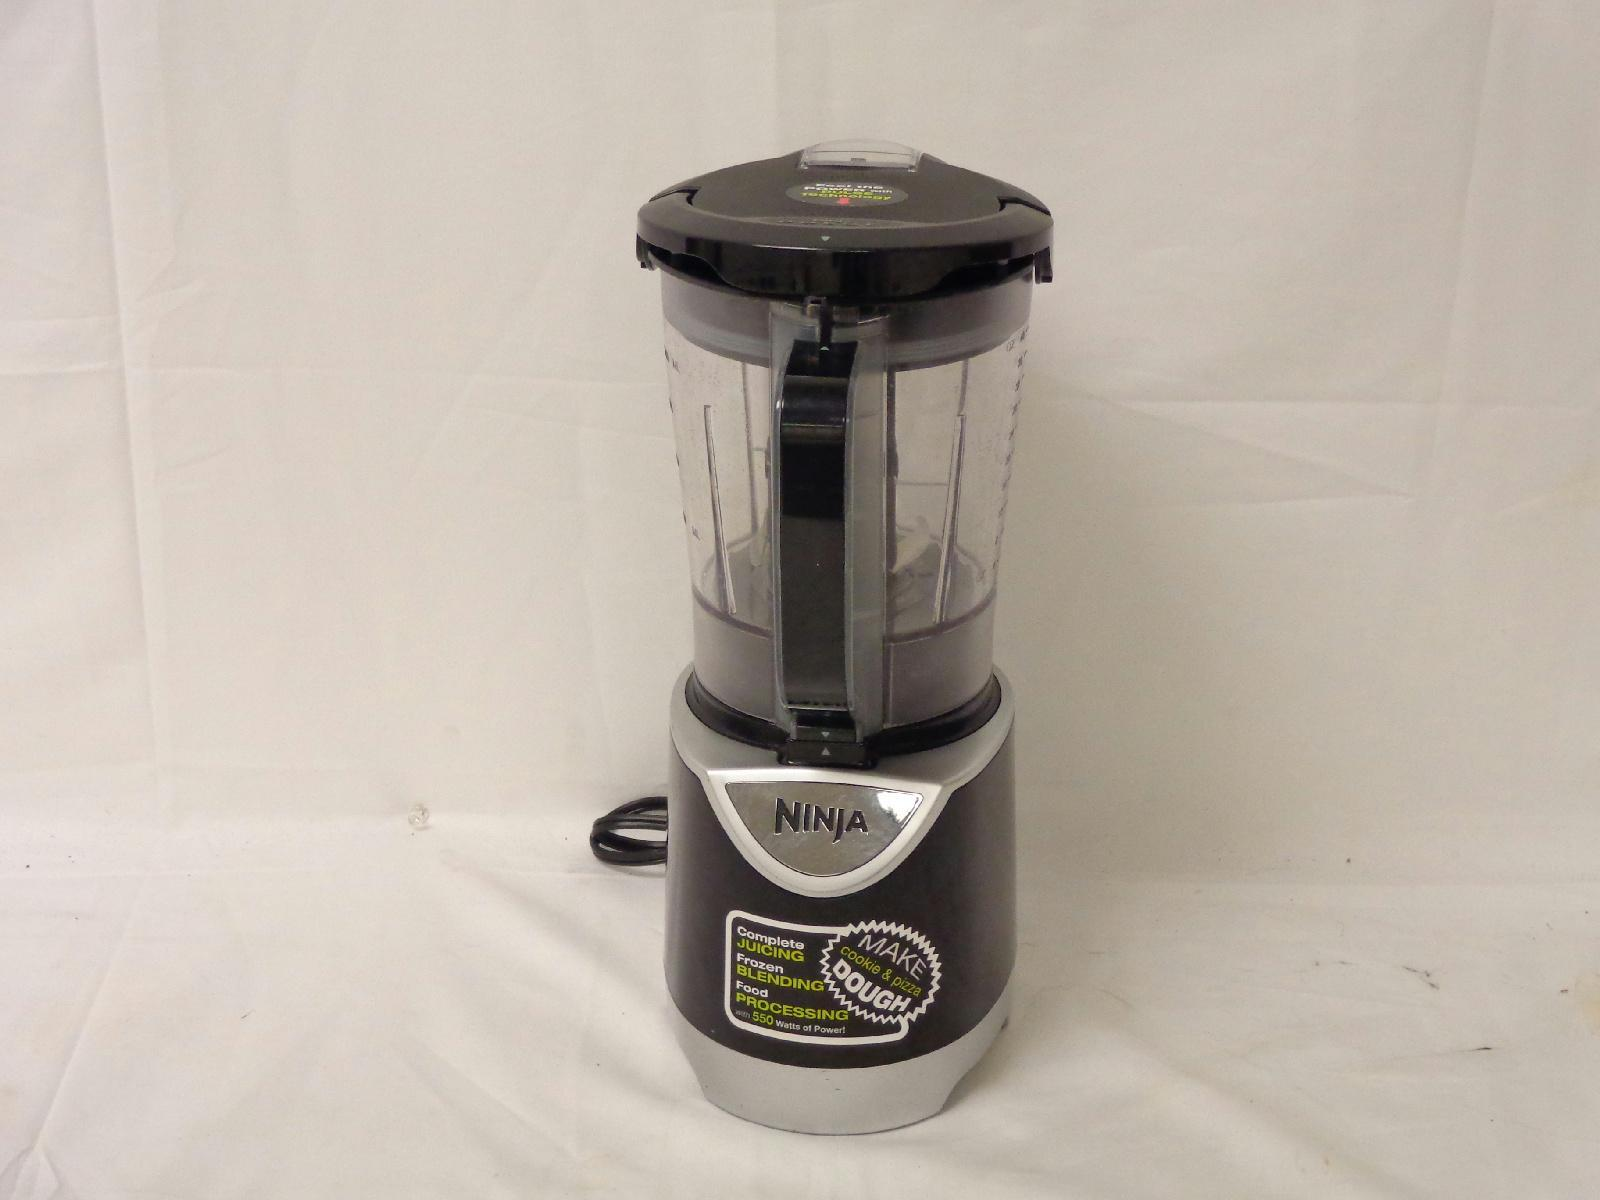 Ninja Kitchen System Pulse BL201-30 Blender Juicer Mixer